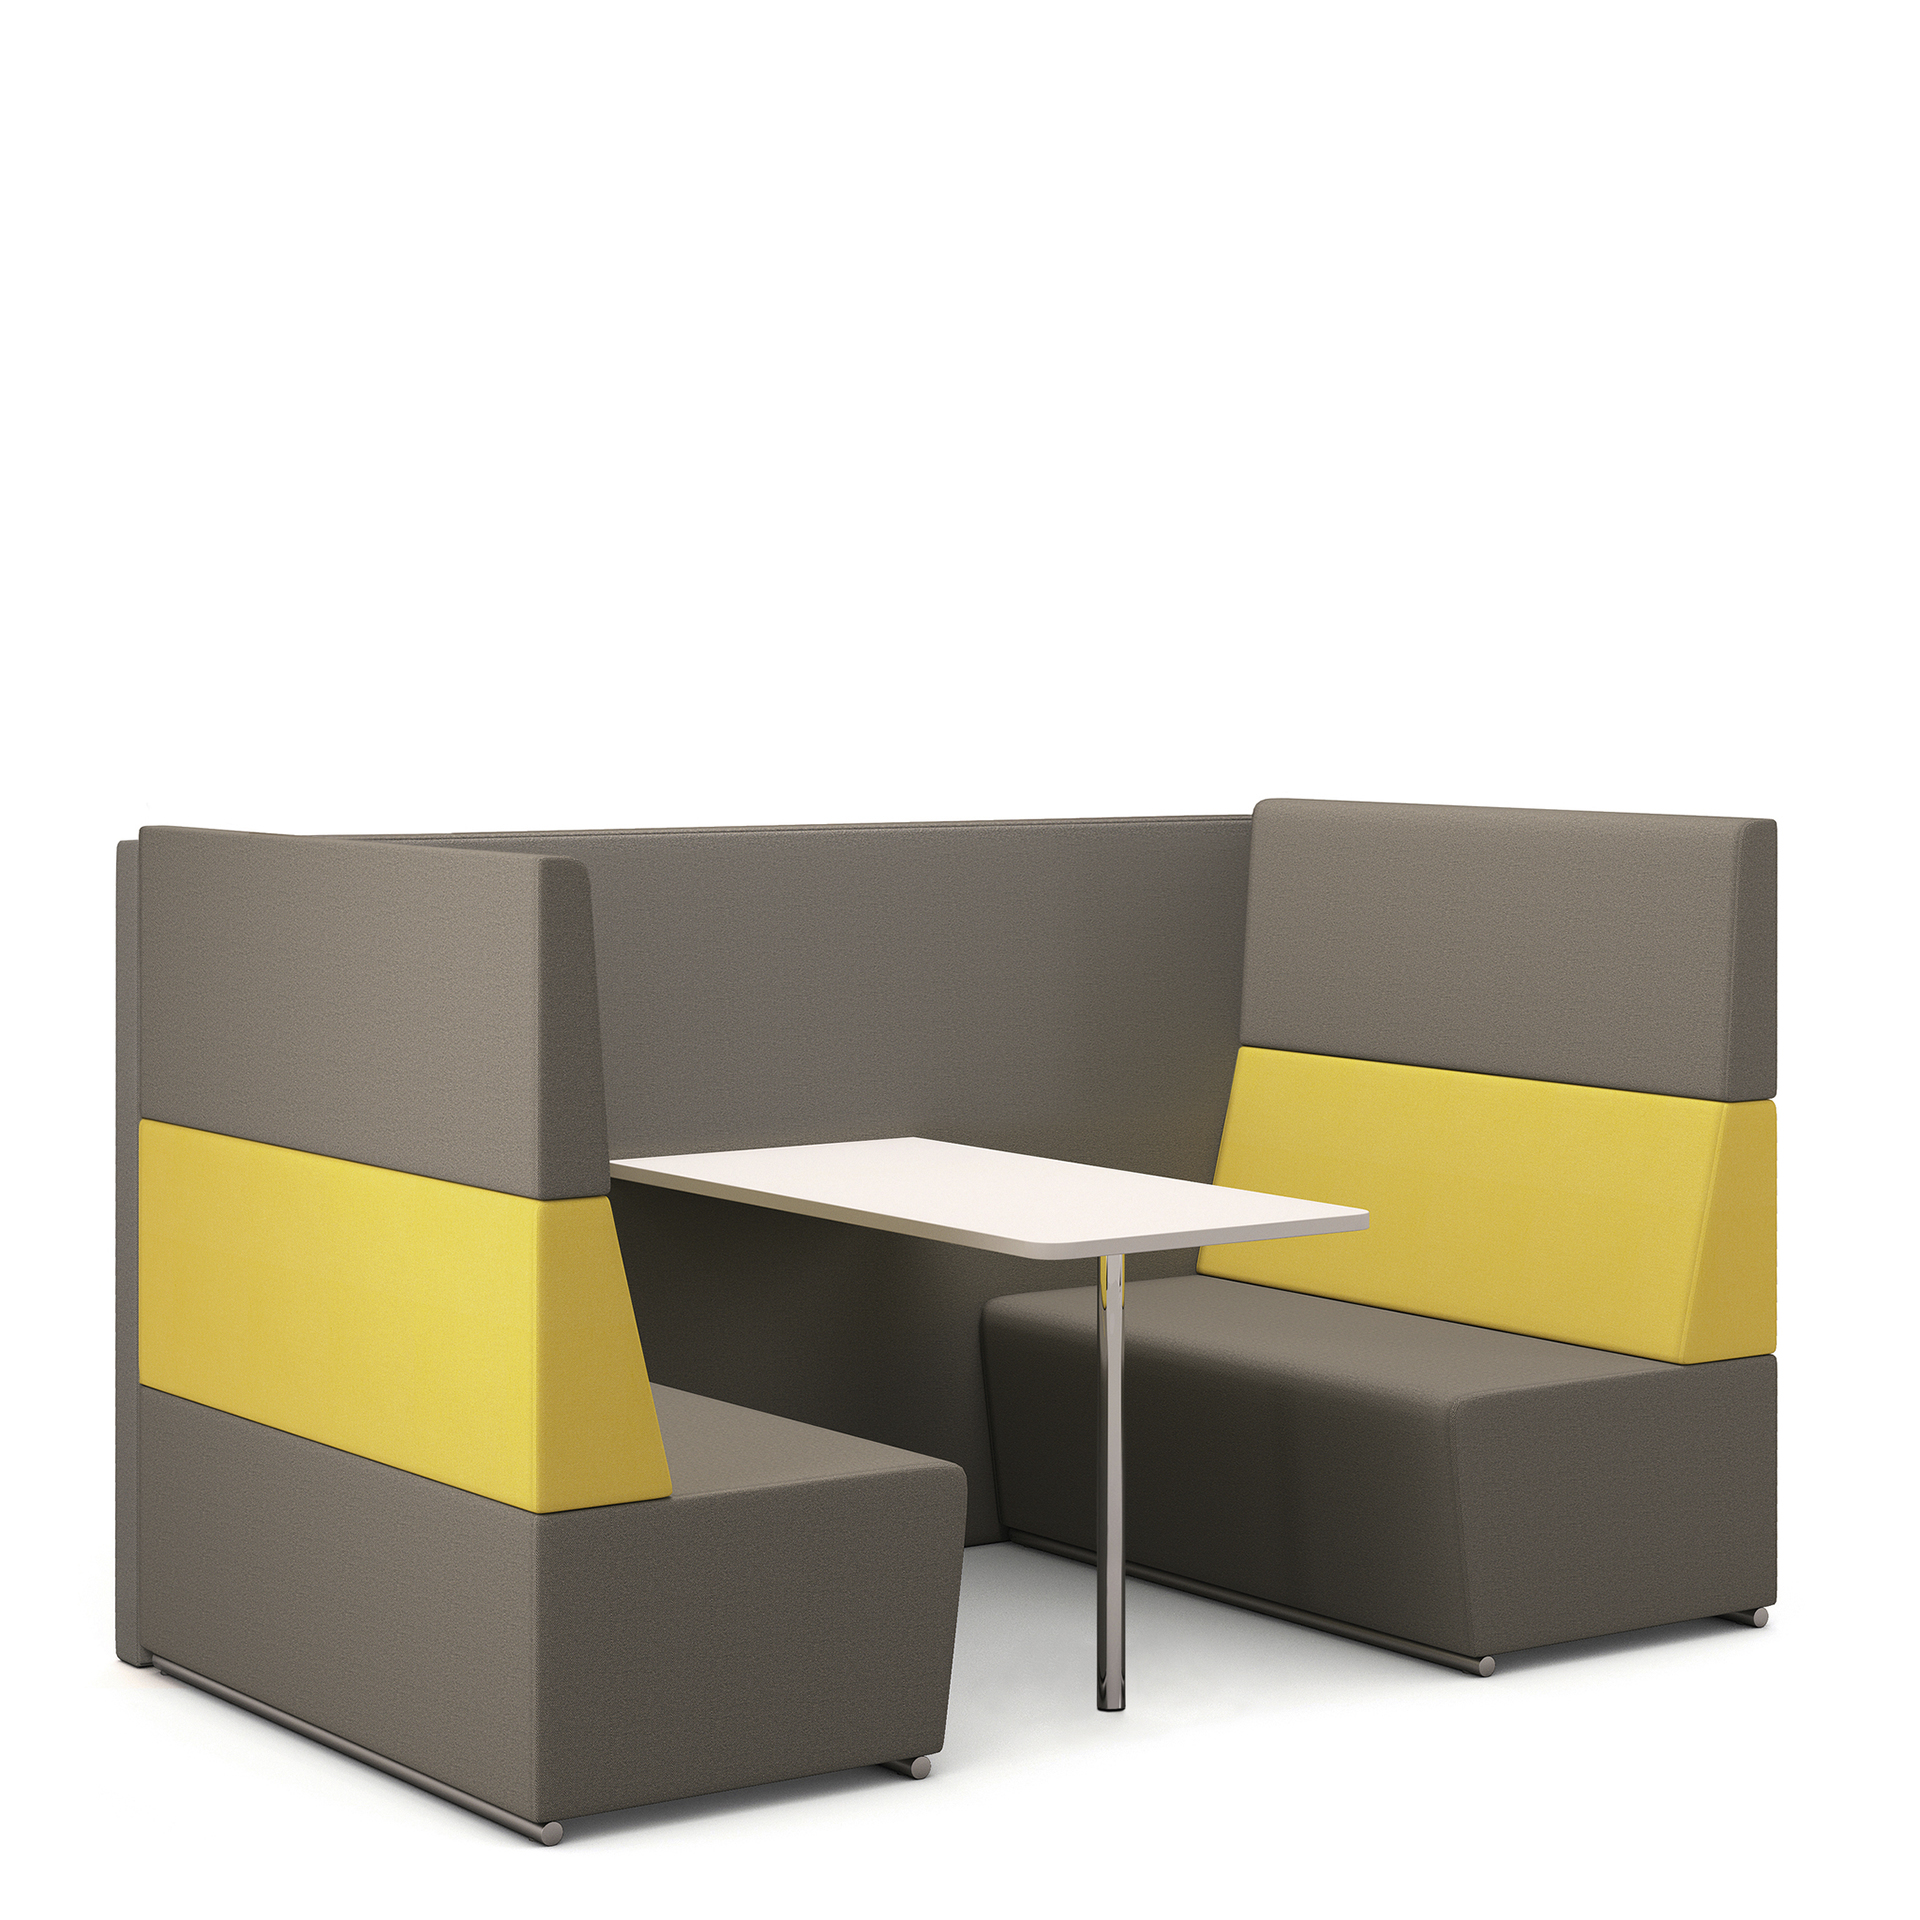 Breakout diner seating 4 Seat